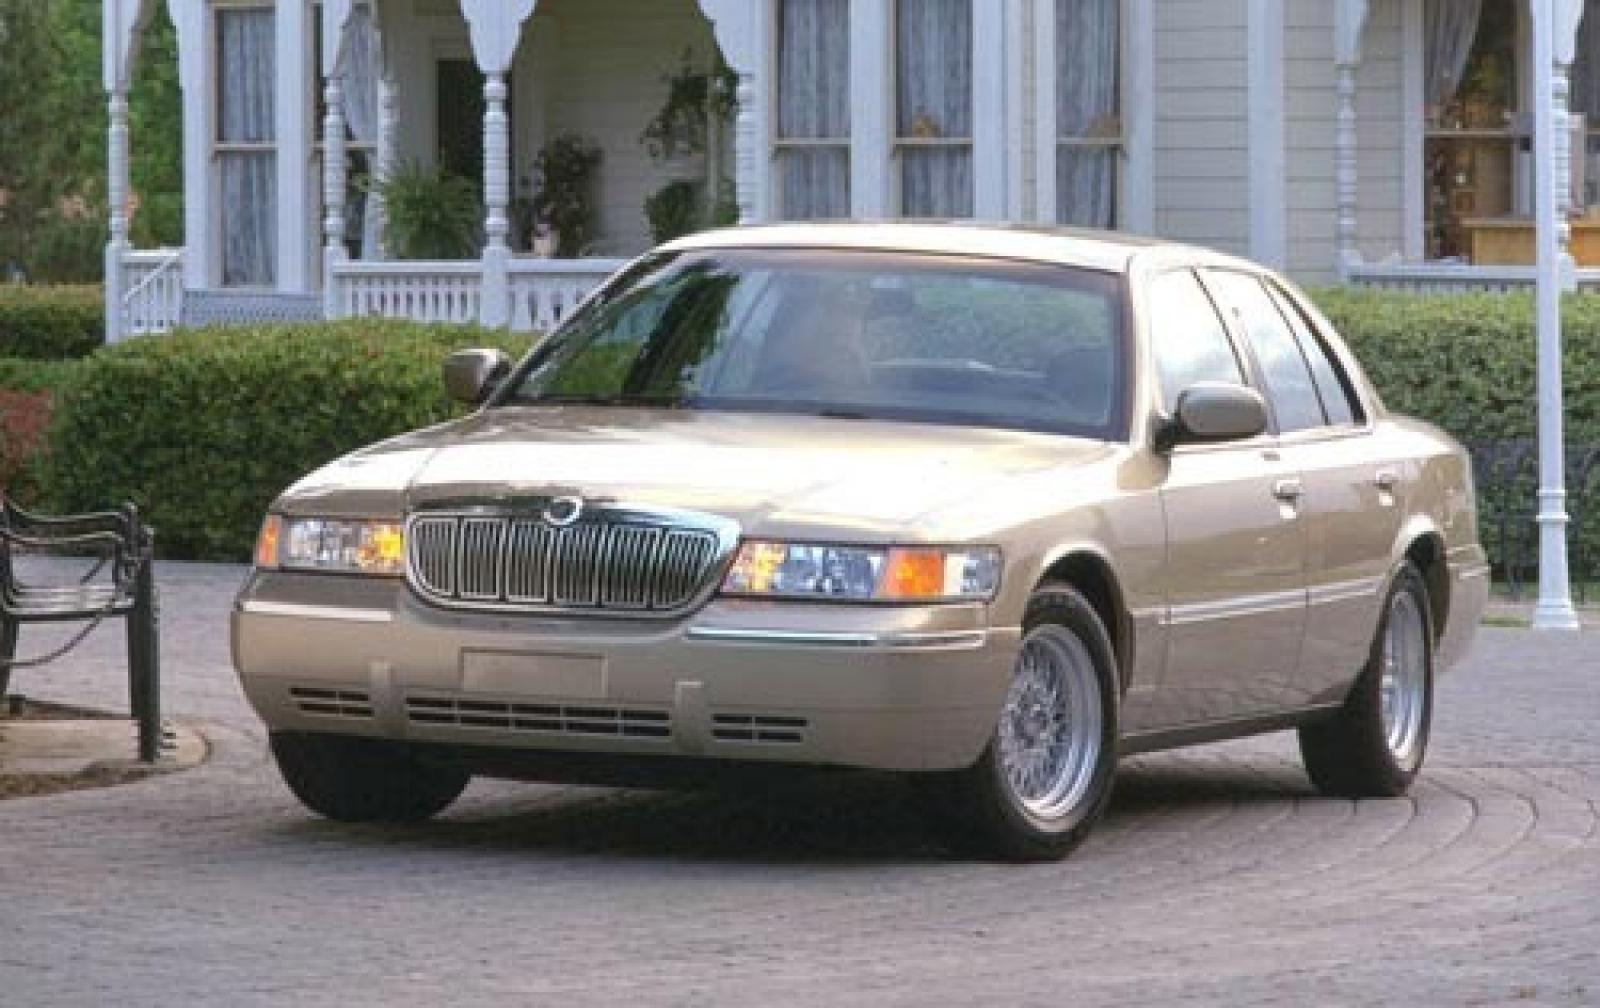 2000 mercury grand marquis information and photos zombiedrive. Black Bedroom Furniture Sets. Home Design Ideas